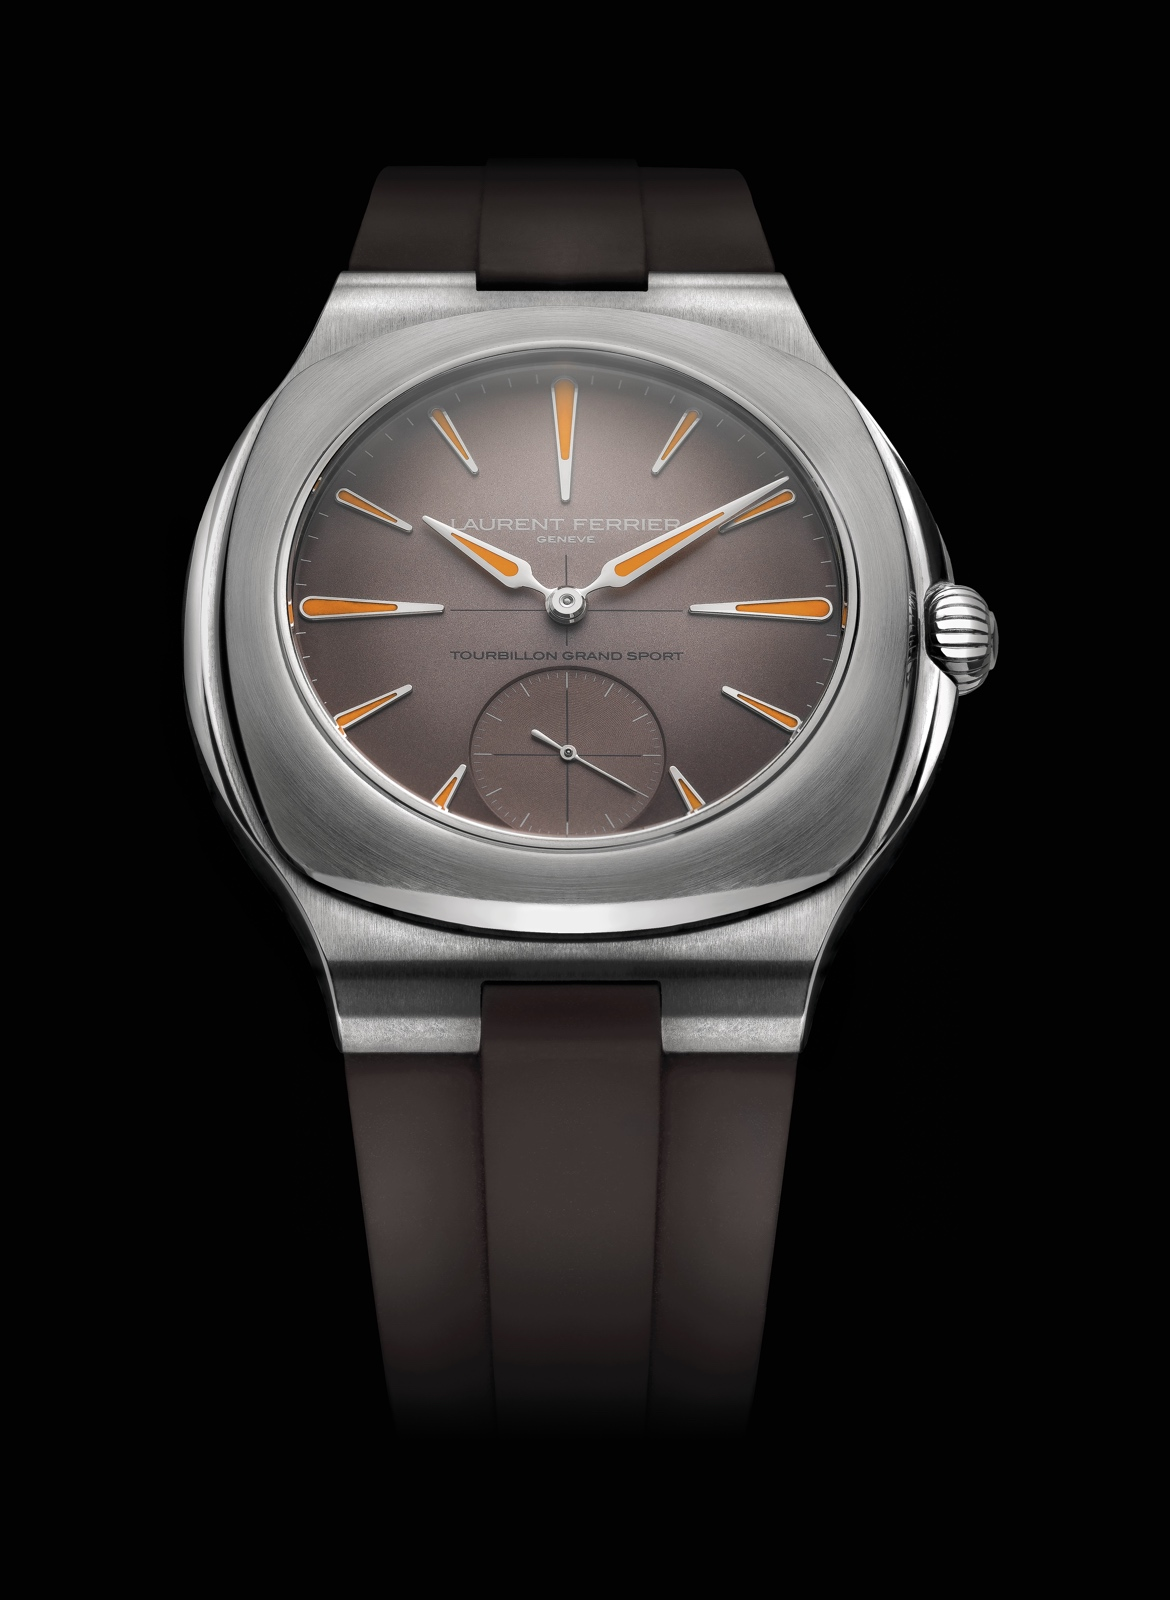 Laurent Ferrier Tourbillon Grand Sport - front